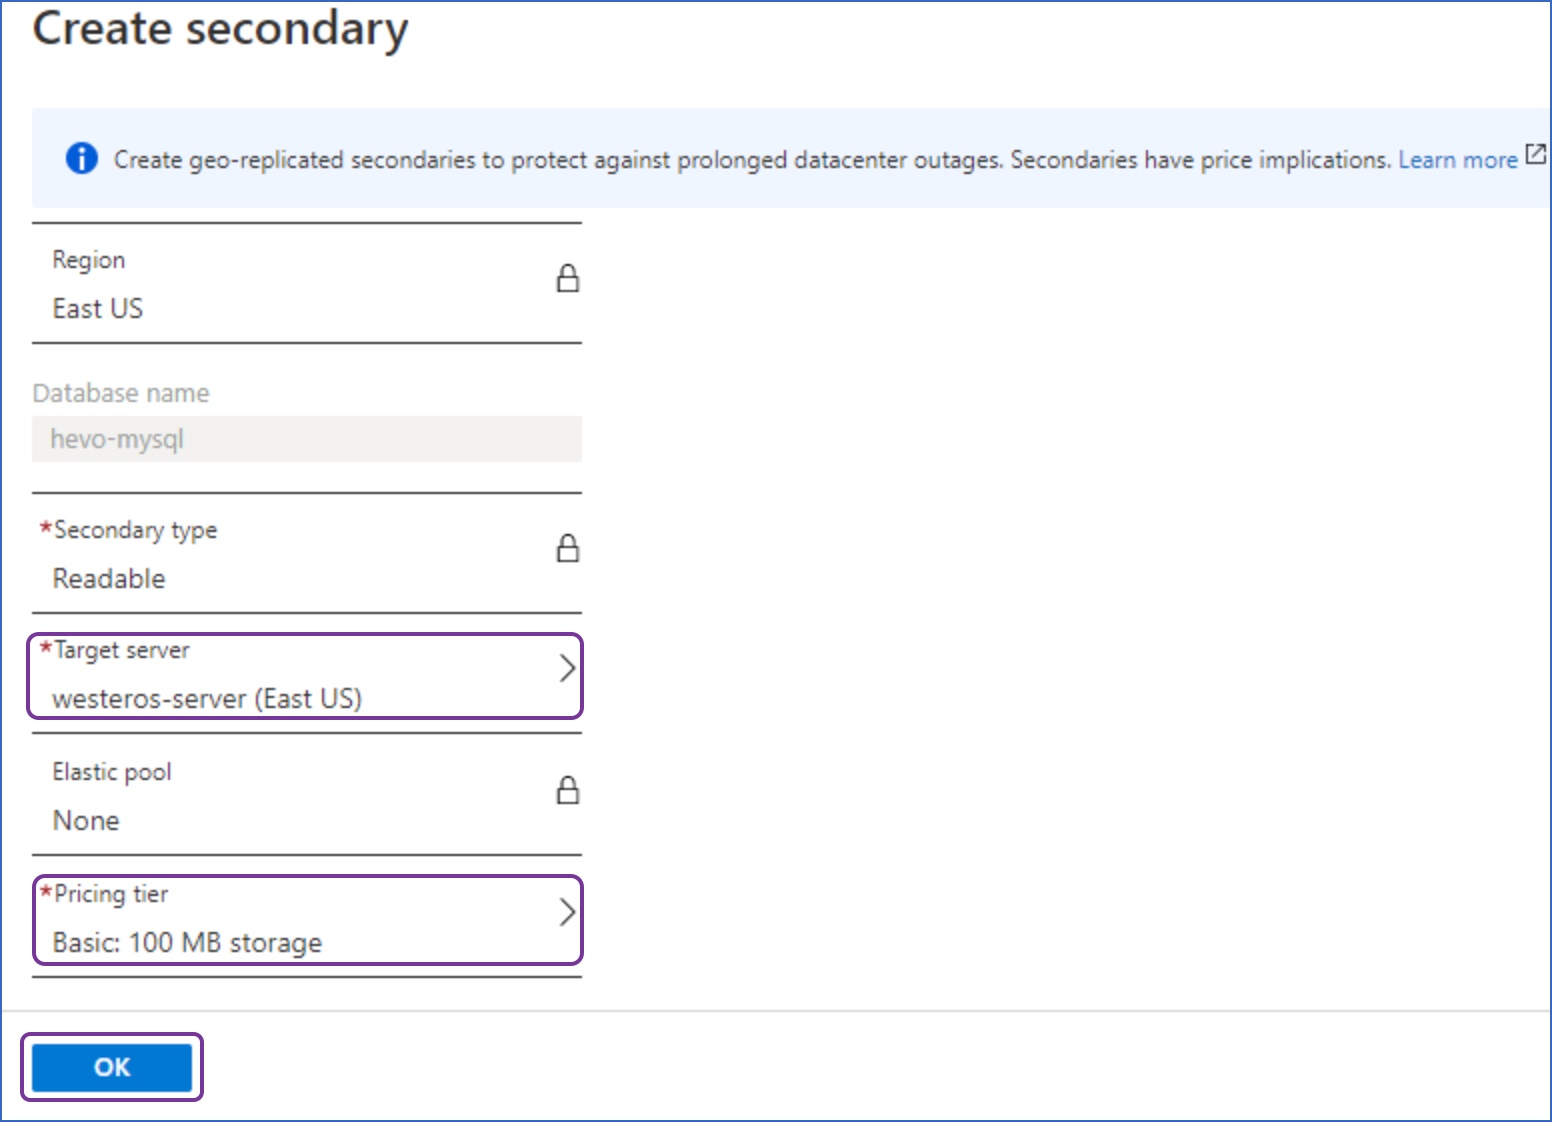 Create secondary page